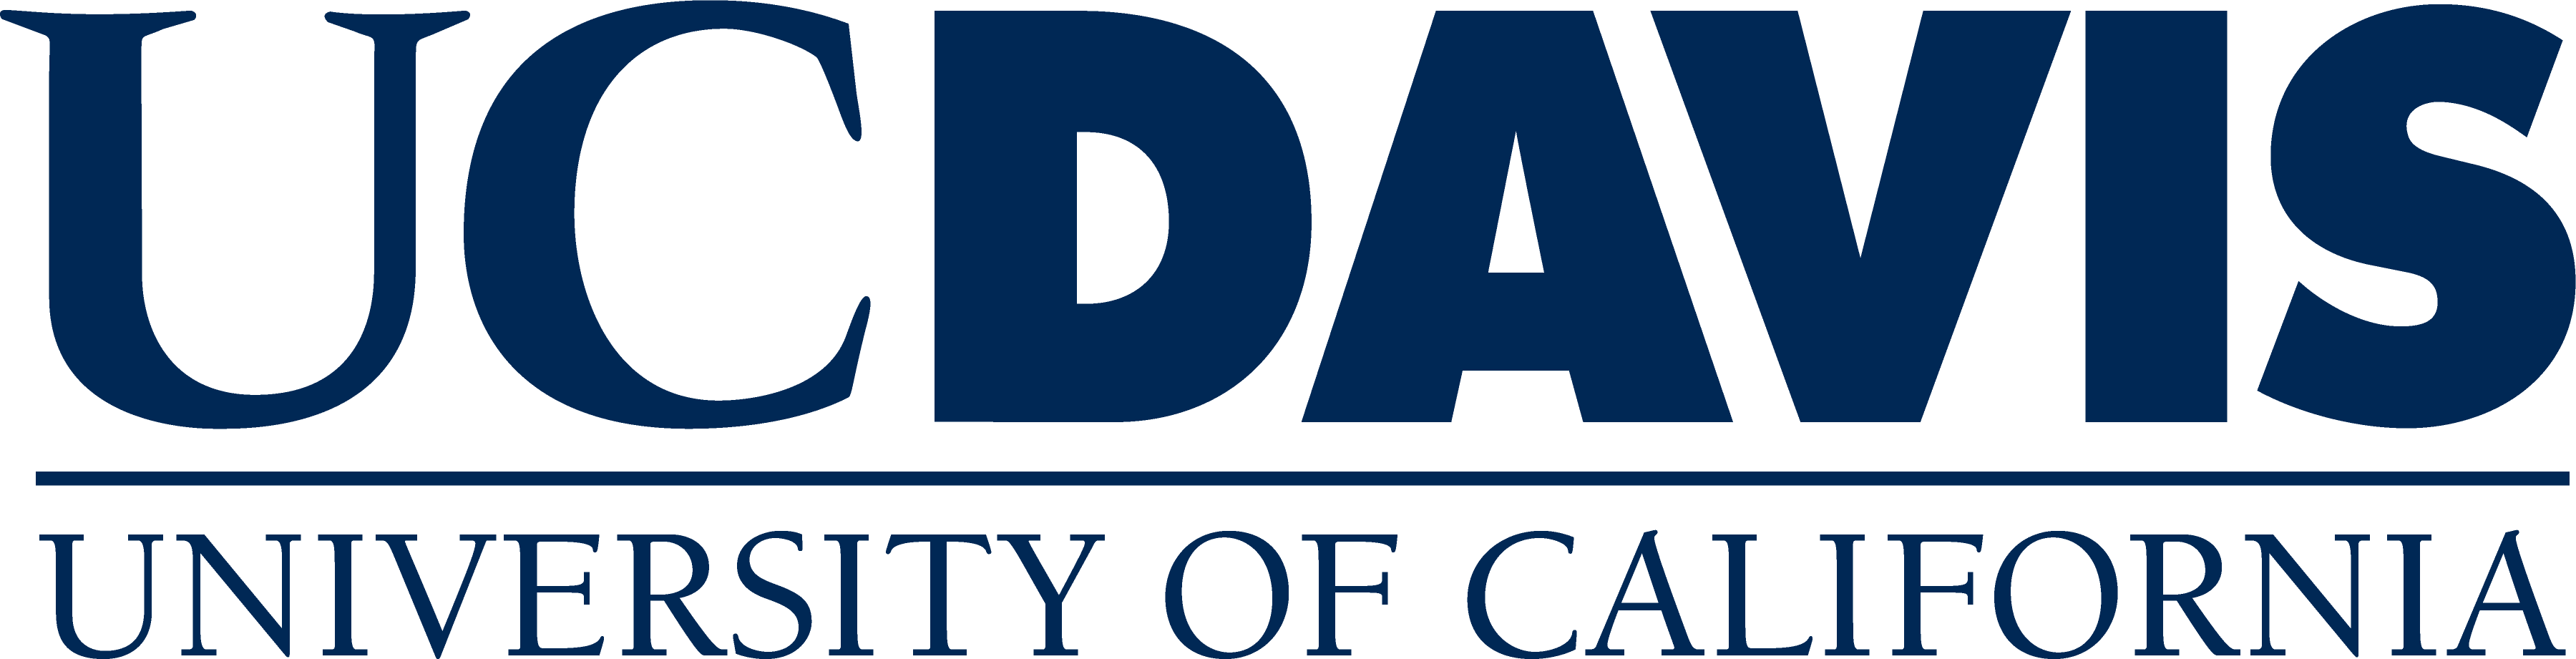 university-of-california-davis